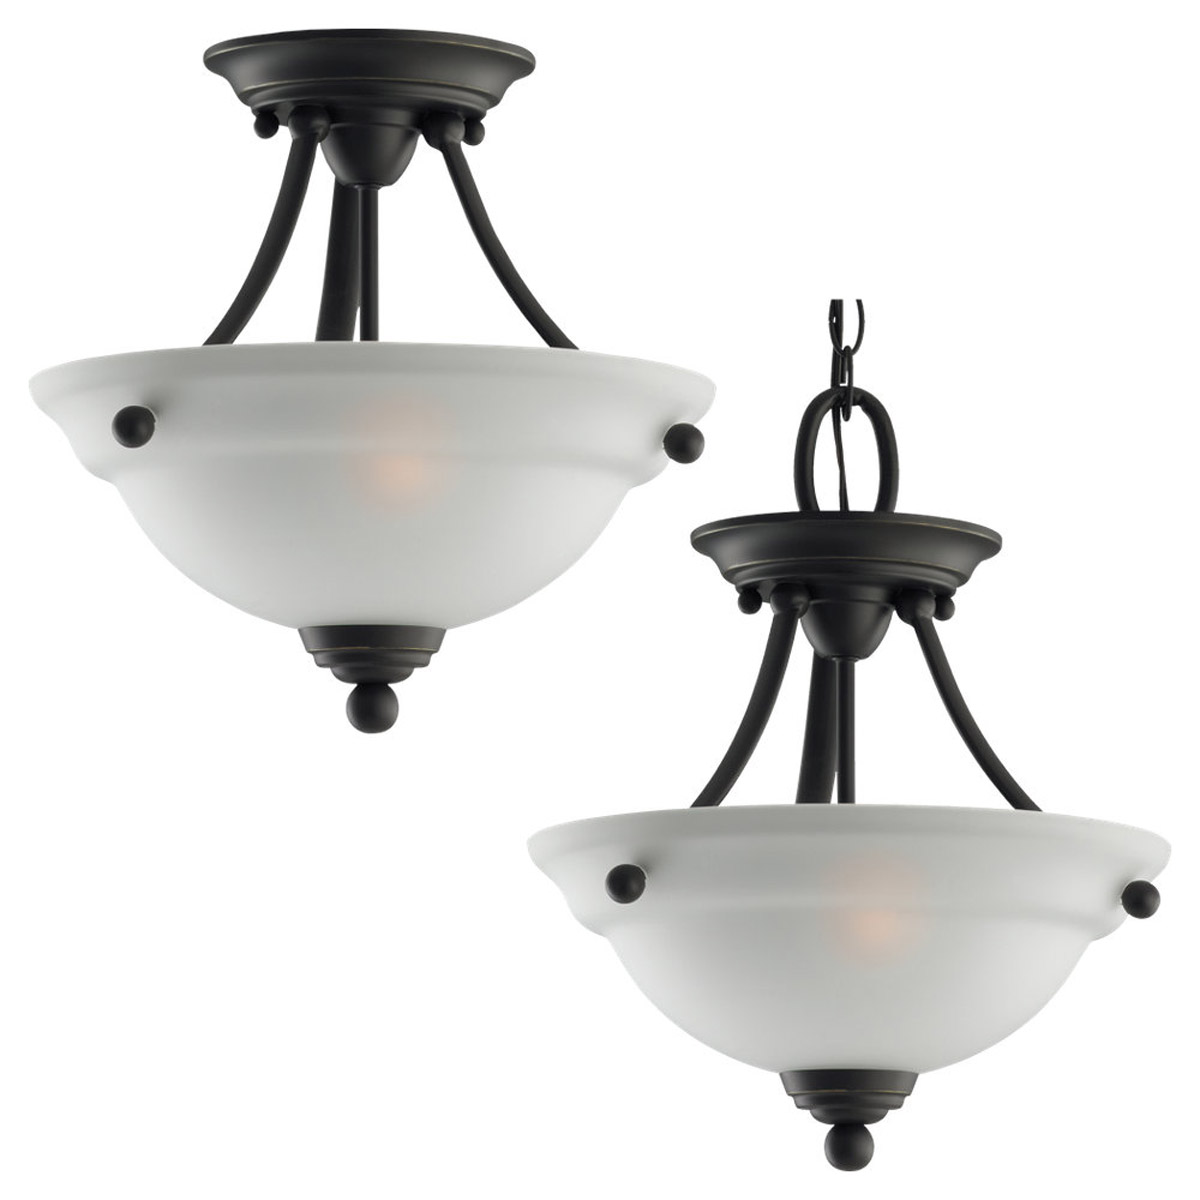 Sea Gull 77625-782 Wheaton 2 Light 12 inch Heirloom Bronze Semi-Flush Mount Ceiling Light photo